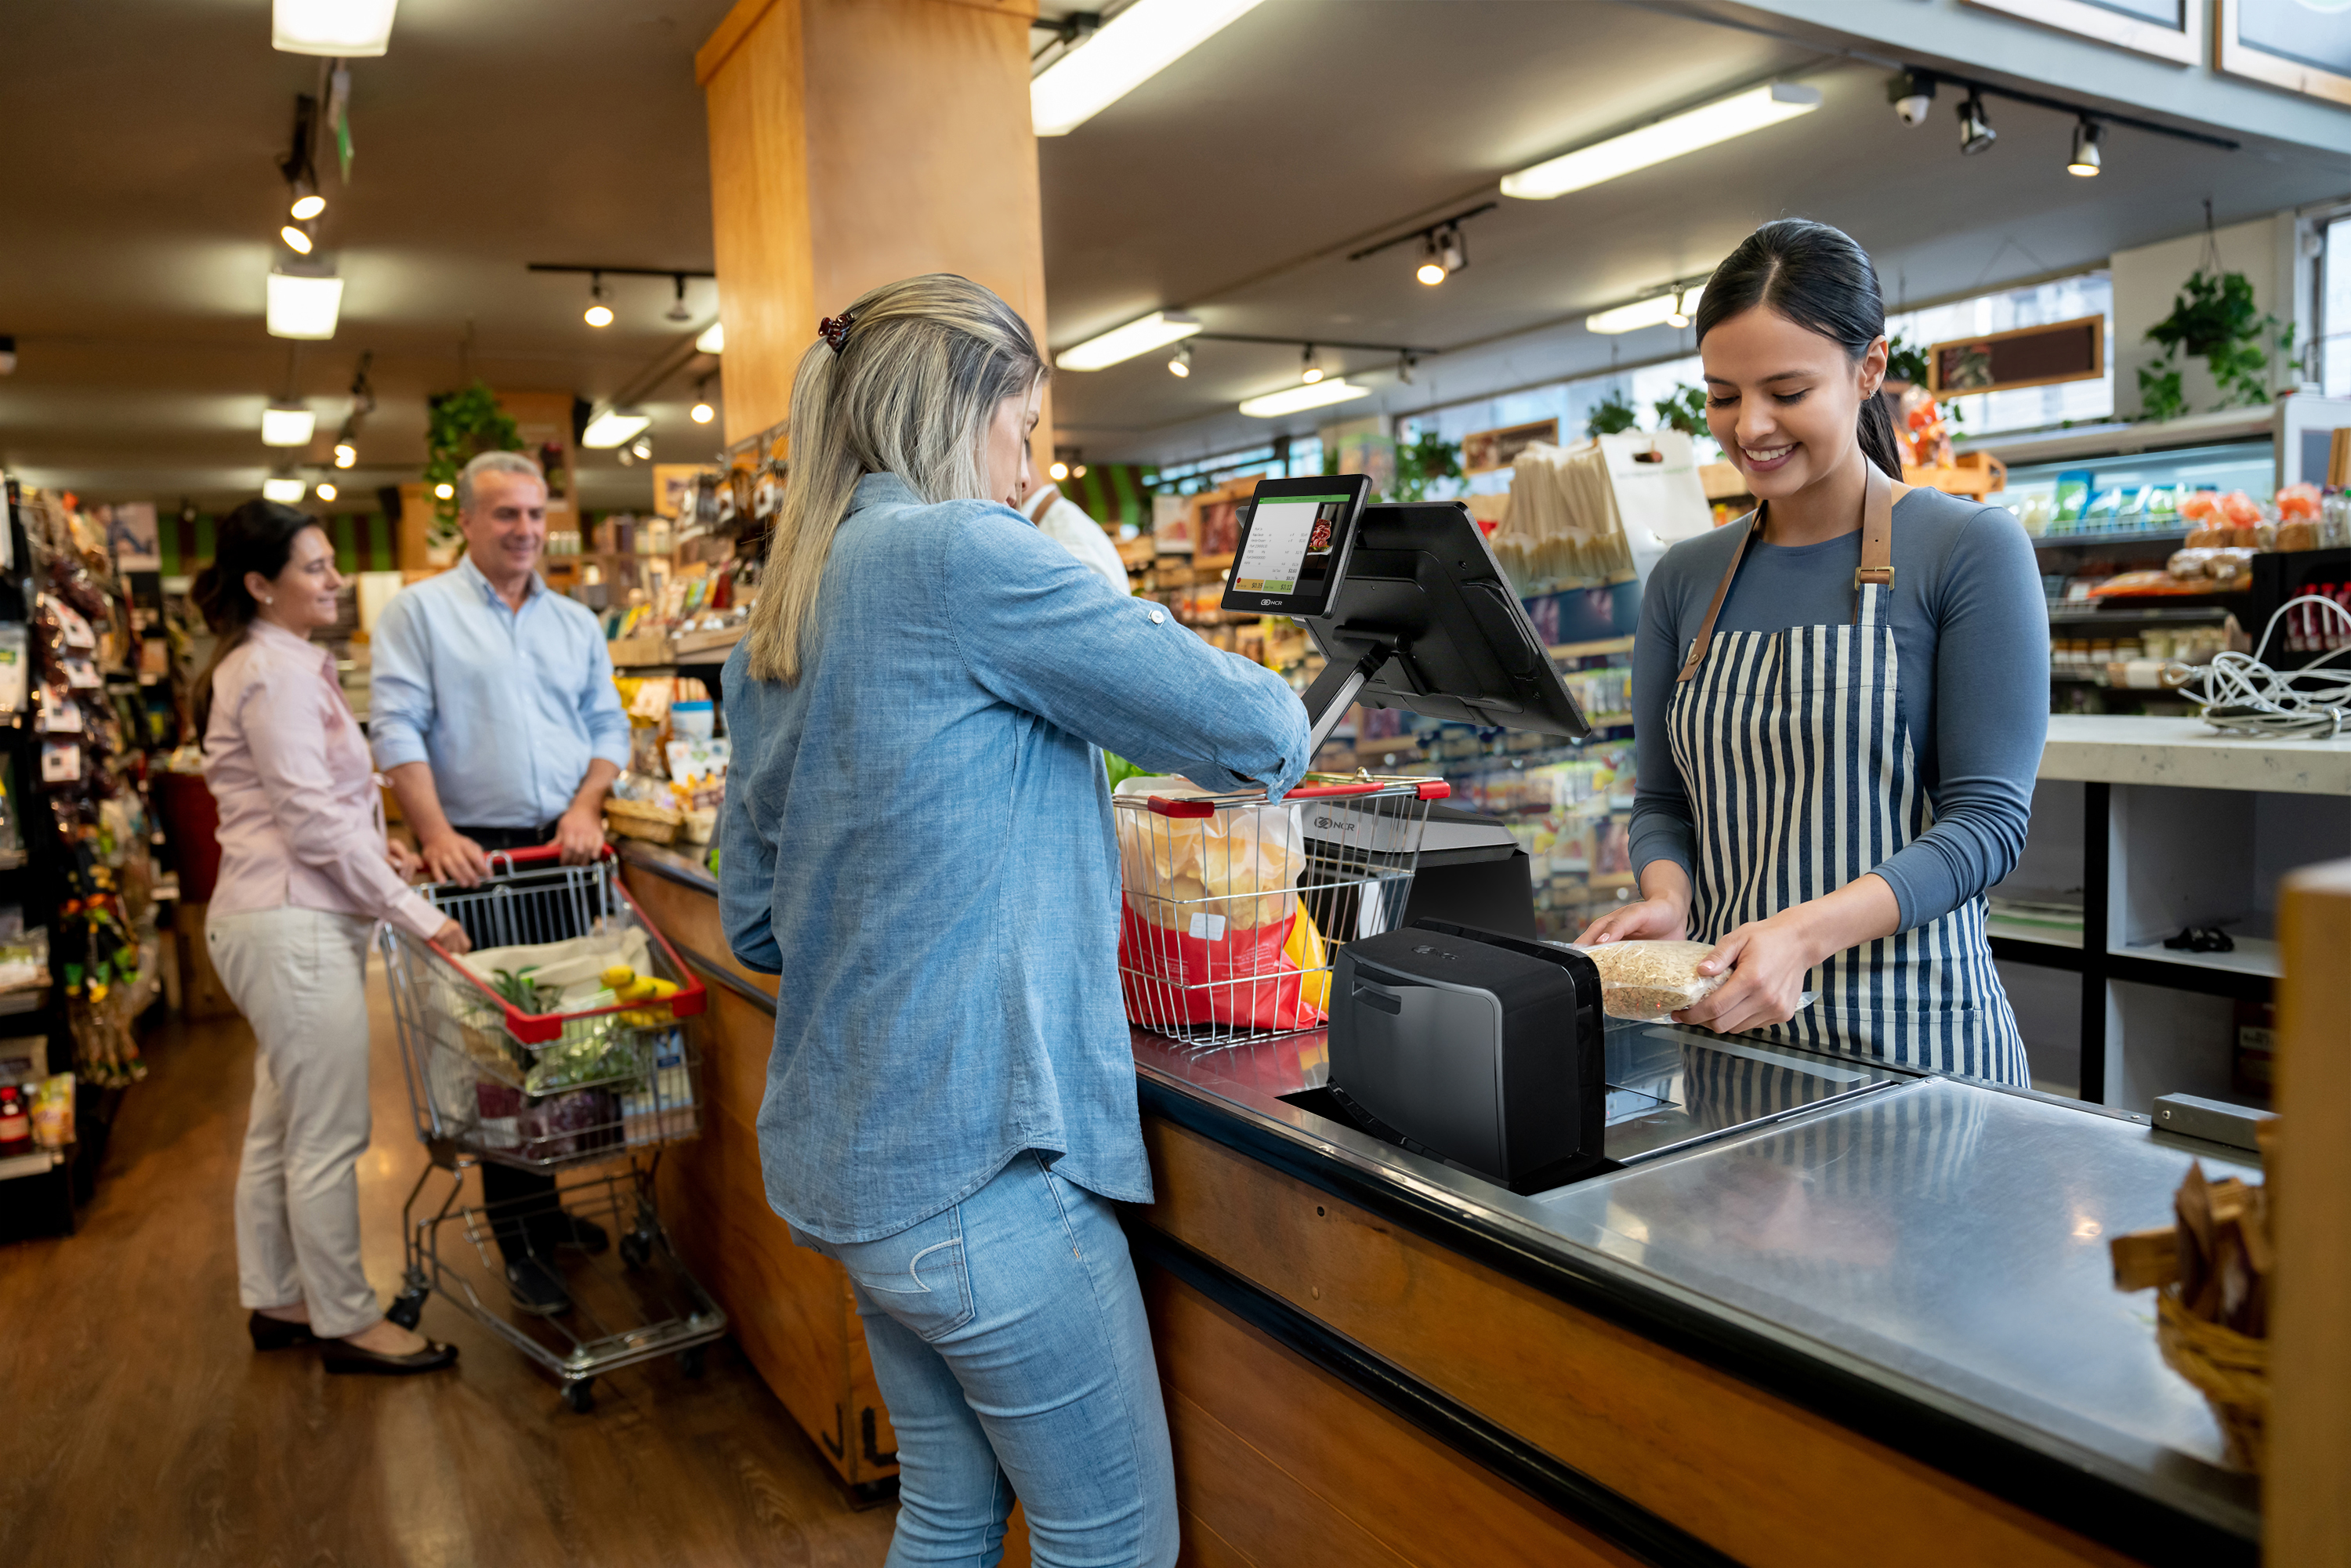 Cheerful employee at supermarket checking out customers